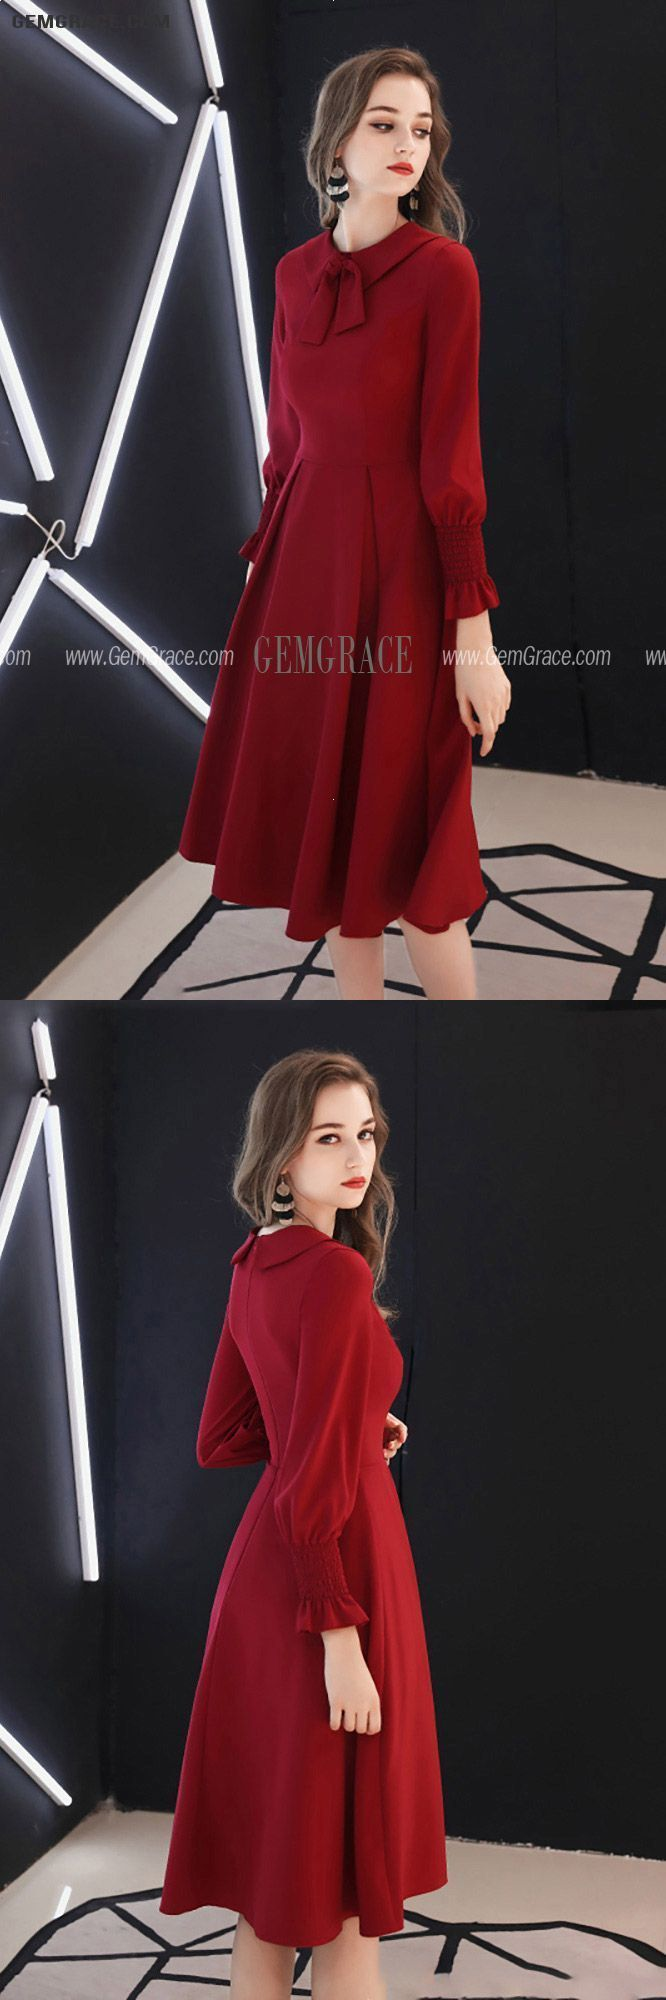 Retro Knee Length Burgundy Party Dress With Long Sleeves Bow Knot Ref#HTX97033 at GemGrace. #HomecomingDresses Shop now to get $10 off. Pro custom-made service for wedding dress, formal dress. View Homecoming Dresses,Red Homecoming Dresses,Long Sleeve Homecoming Dresses,Burgundy Homecoming Dresses,Modest Homecoming Dresses,Semi Formal Dresses for more ideas. Click to shop now! #BuyableHomecomingDresses #longsleevehomecomingdresses Retro Knee Length Burgundy Party Dress With Long Sleeves Bow Knot